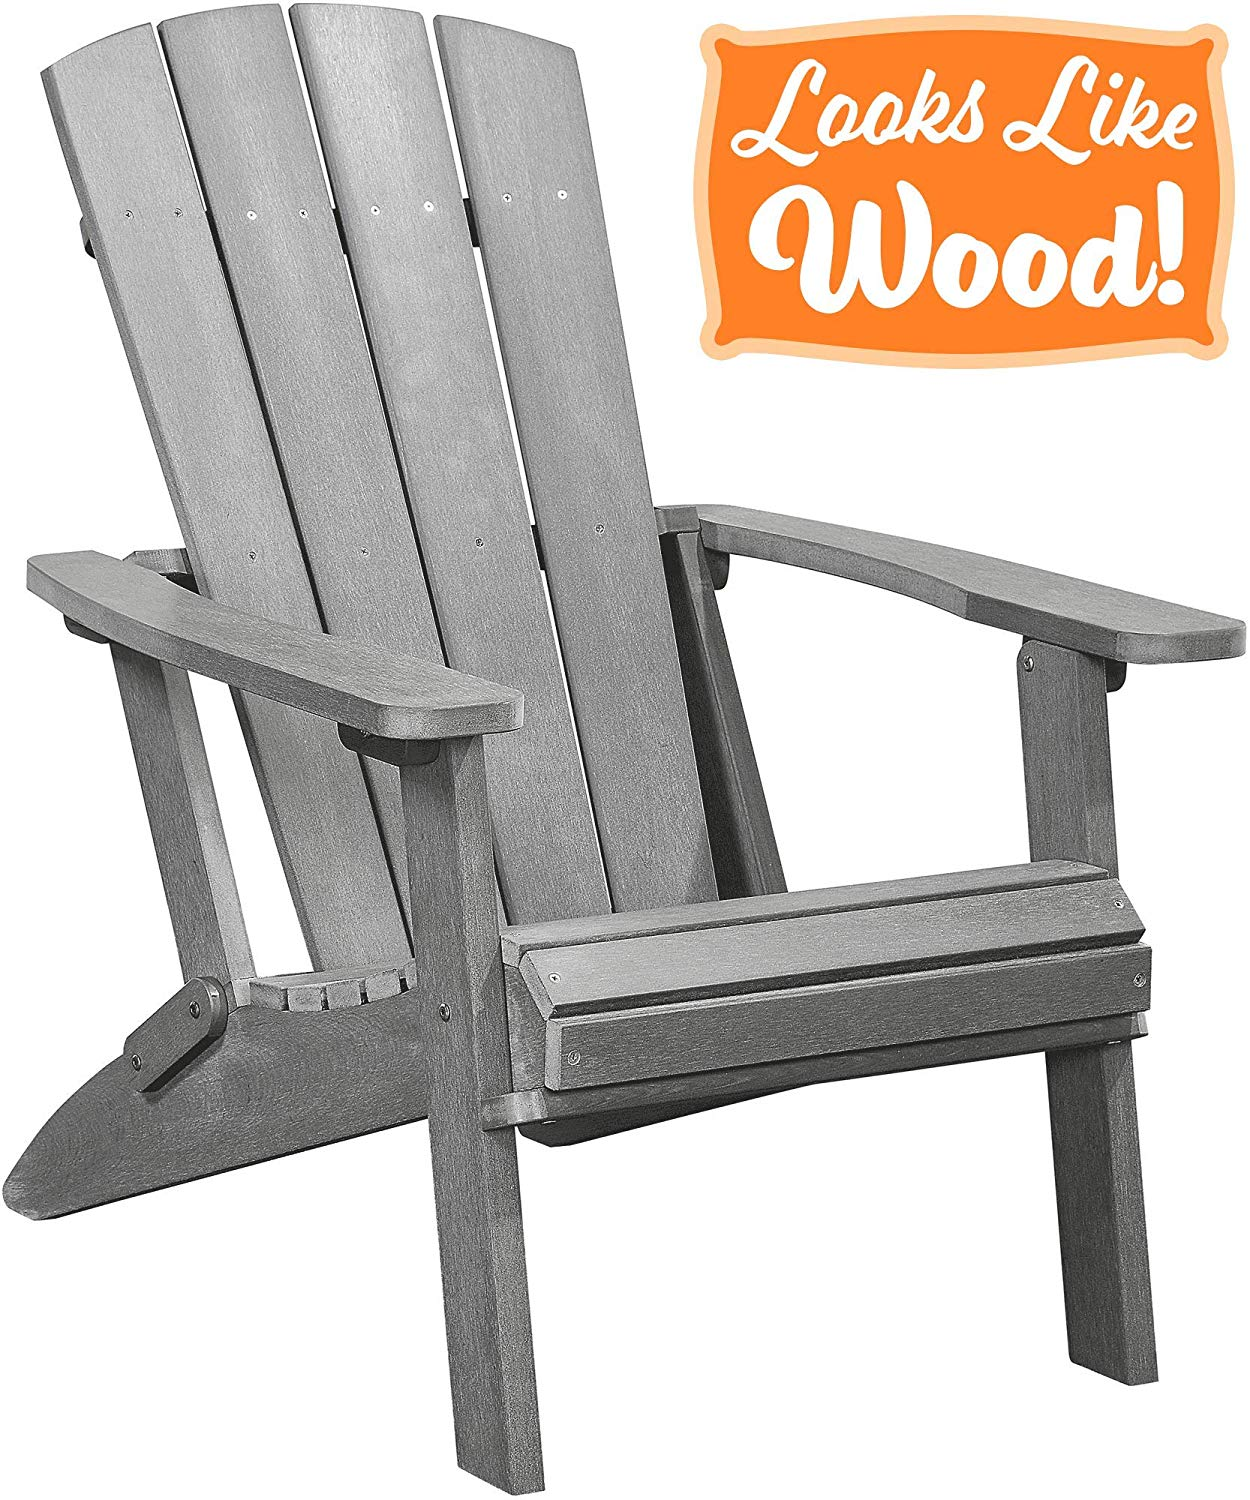 PolyTEAK Modern Oversized Folding Poly Adirondack Chair, Stone Gray - Adult-Size, Weather Resistant, Made from Plastic